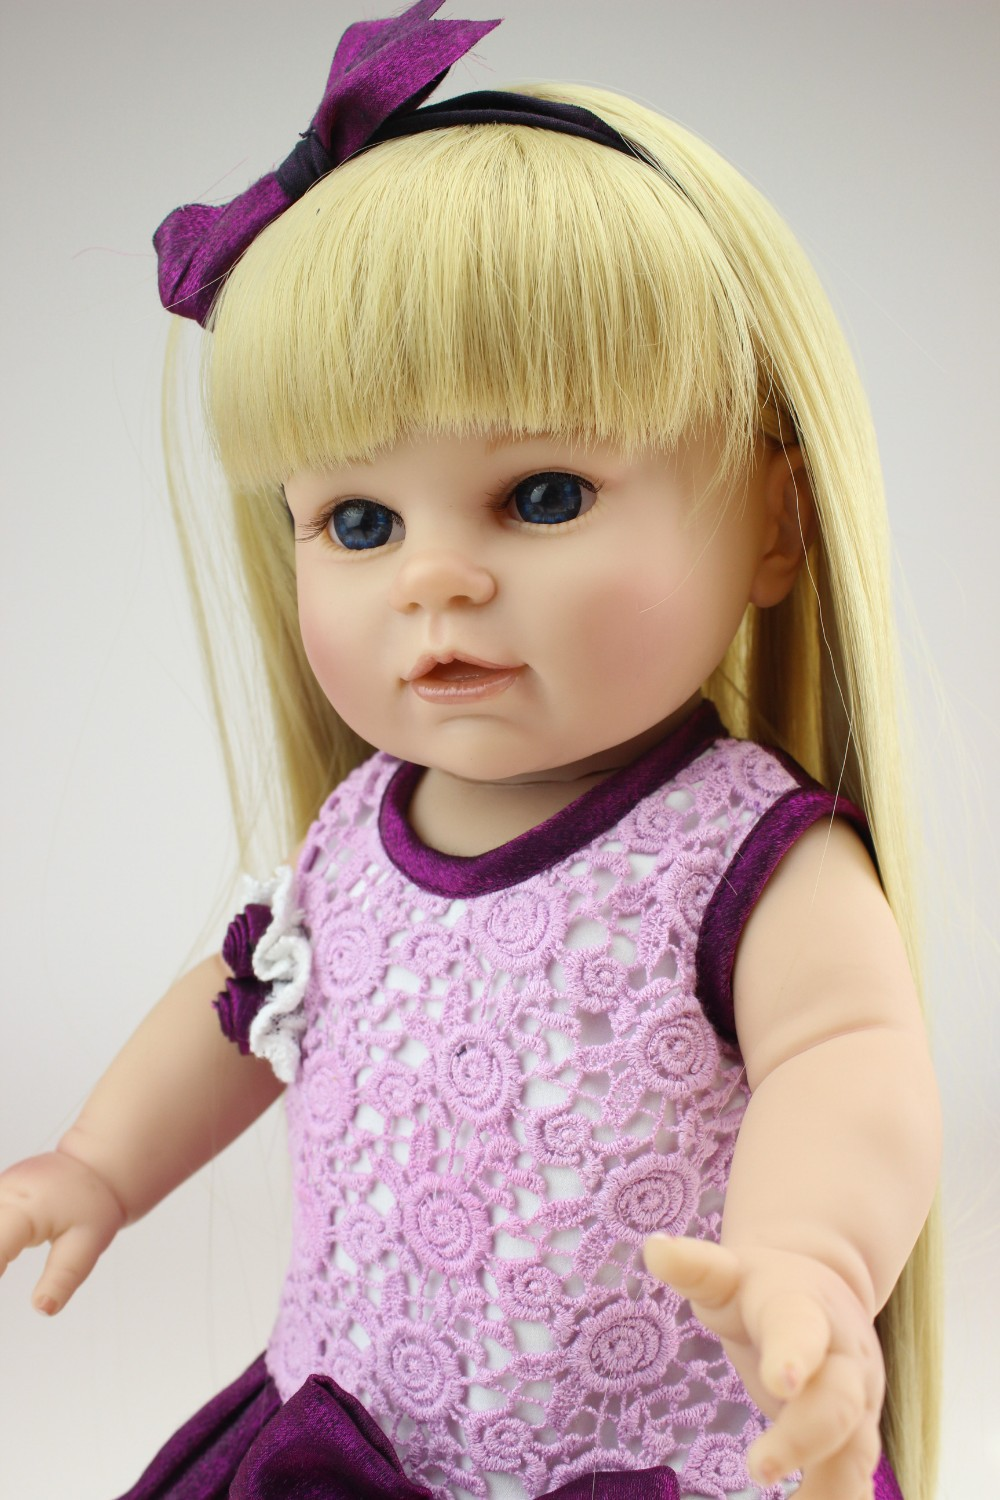 2015 NEW design 16inches American girl doll purple dress Dollie& me fashion doll Our generation american living new eggplant purple women s size 14 seamed sheath dress $79 013